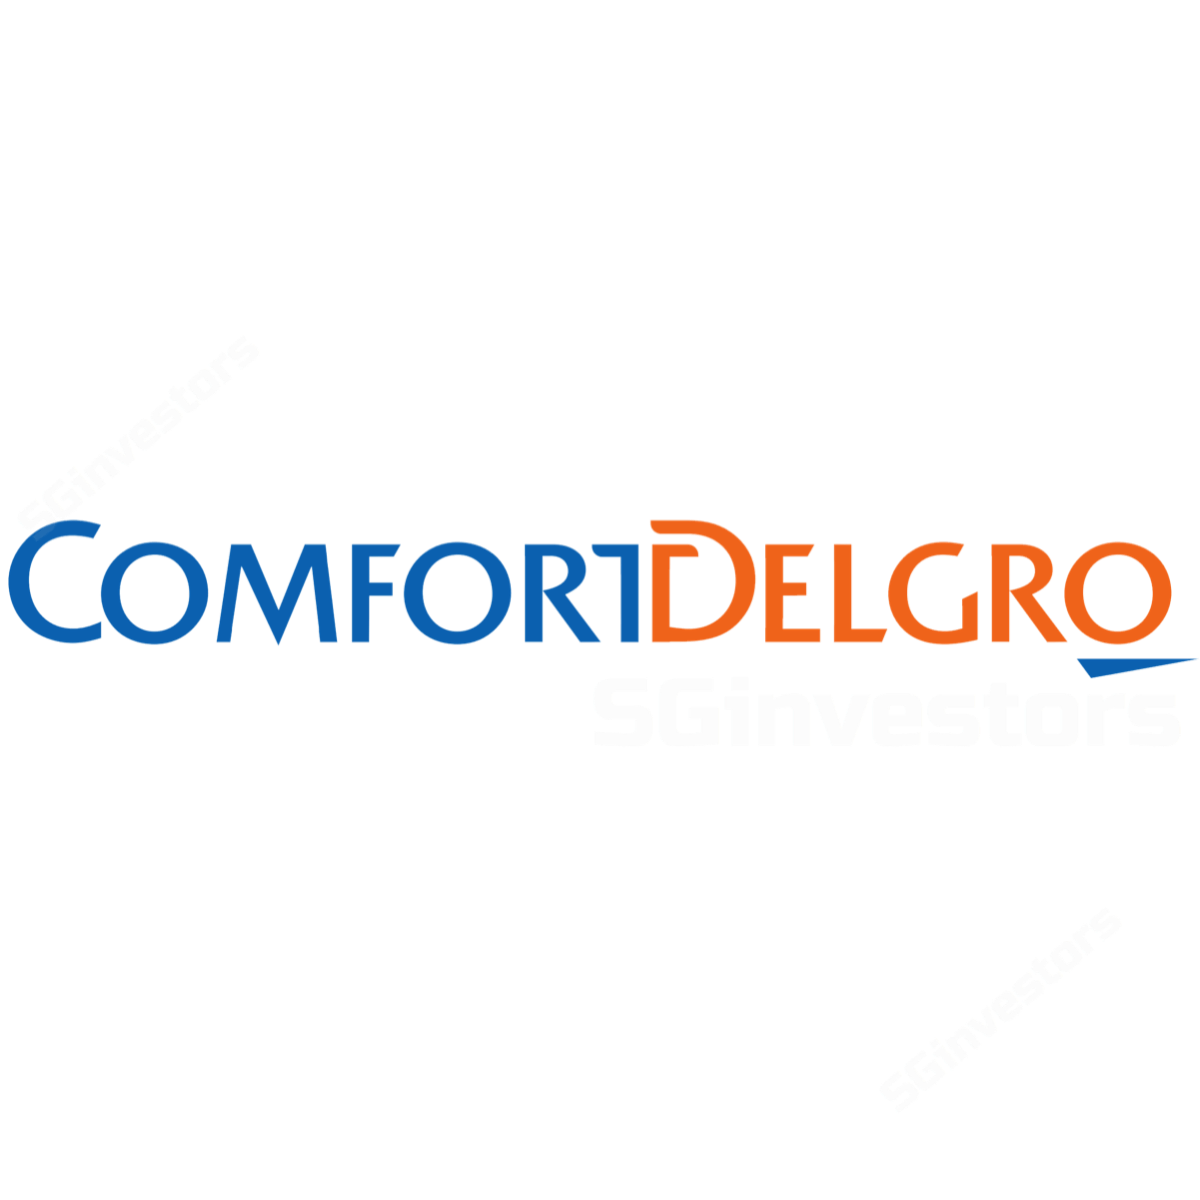 ComfortDelGro Corporation (CD SP) - UOB Kay Hian 2018-02-14: 2017: In Line And Delivering On Dividends